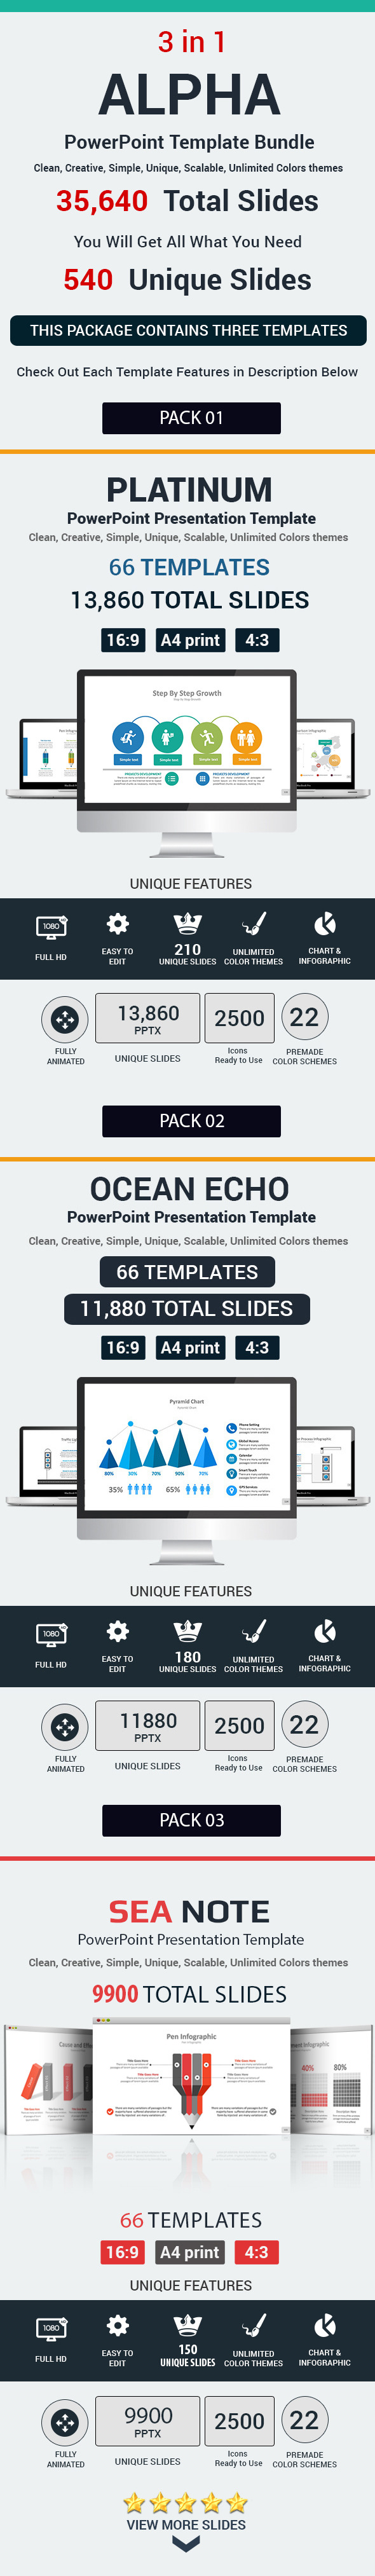 Alpha 3 in 1 PowerPoint Template Bundle - Business PowerPoint Templates